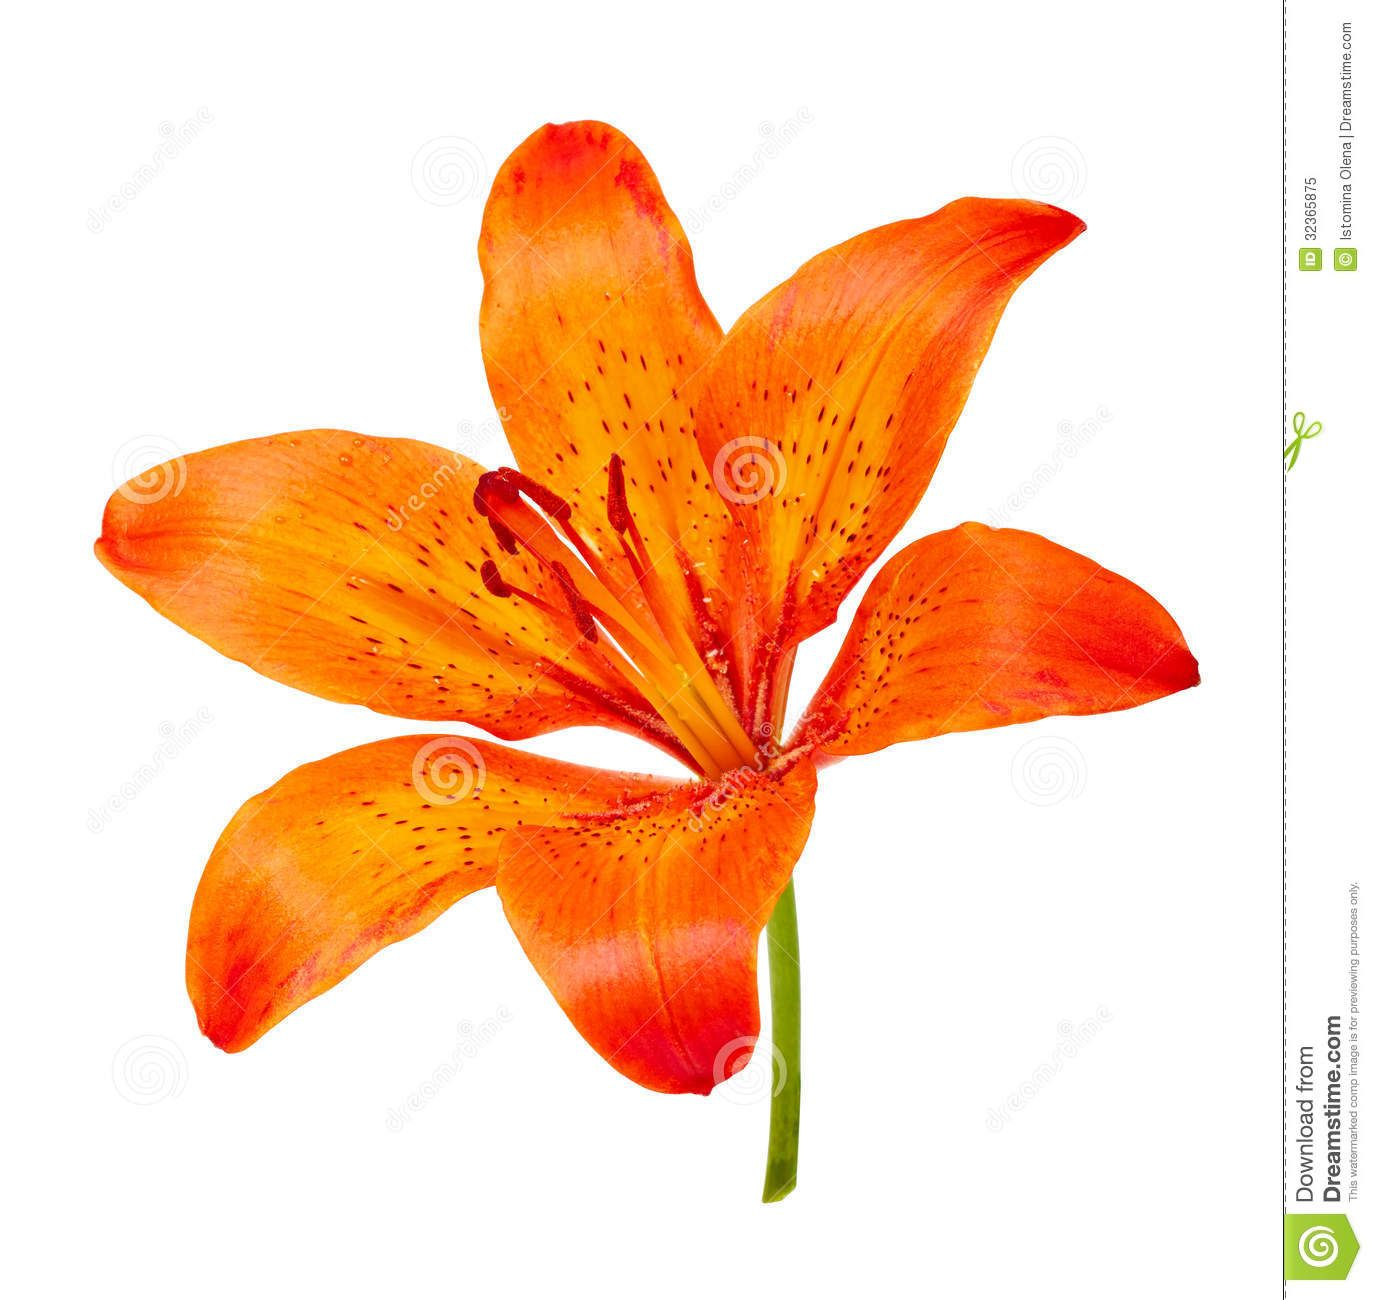 Free download Orange Tiger Lily Clipart for your creation.